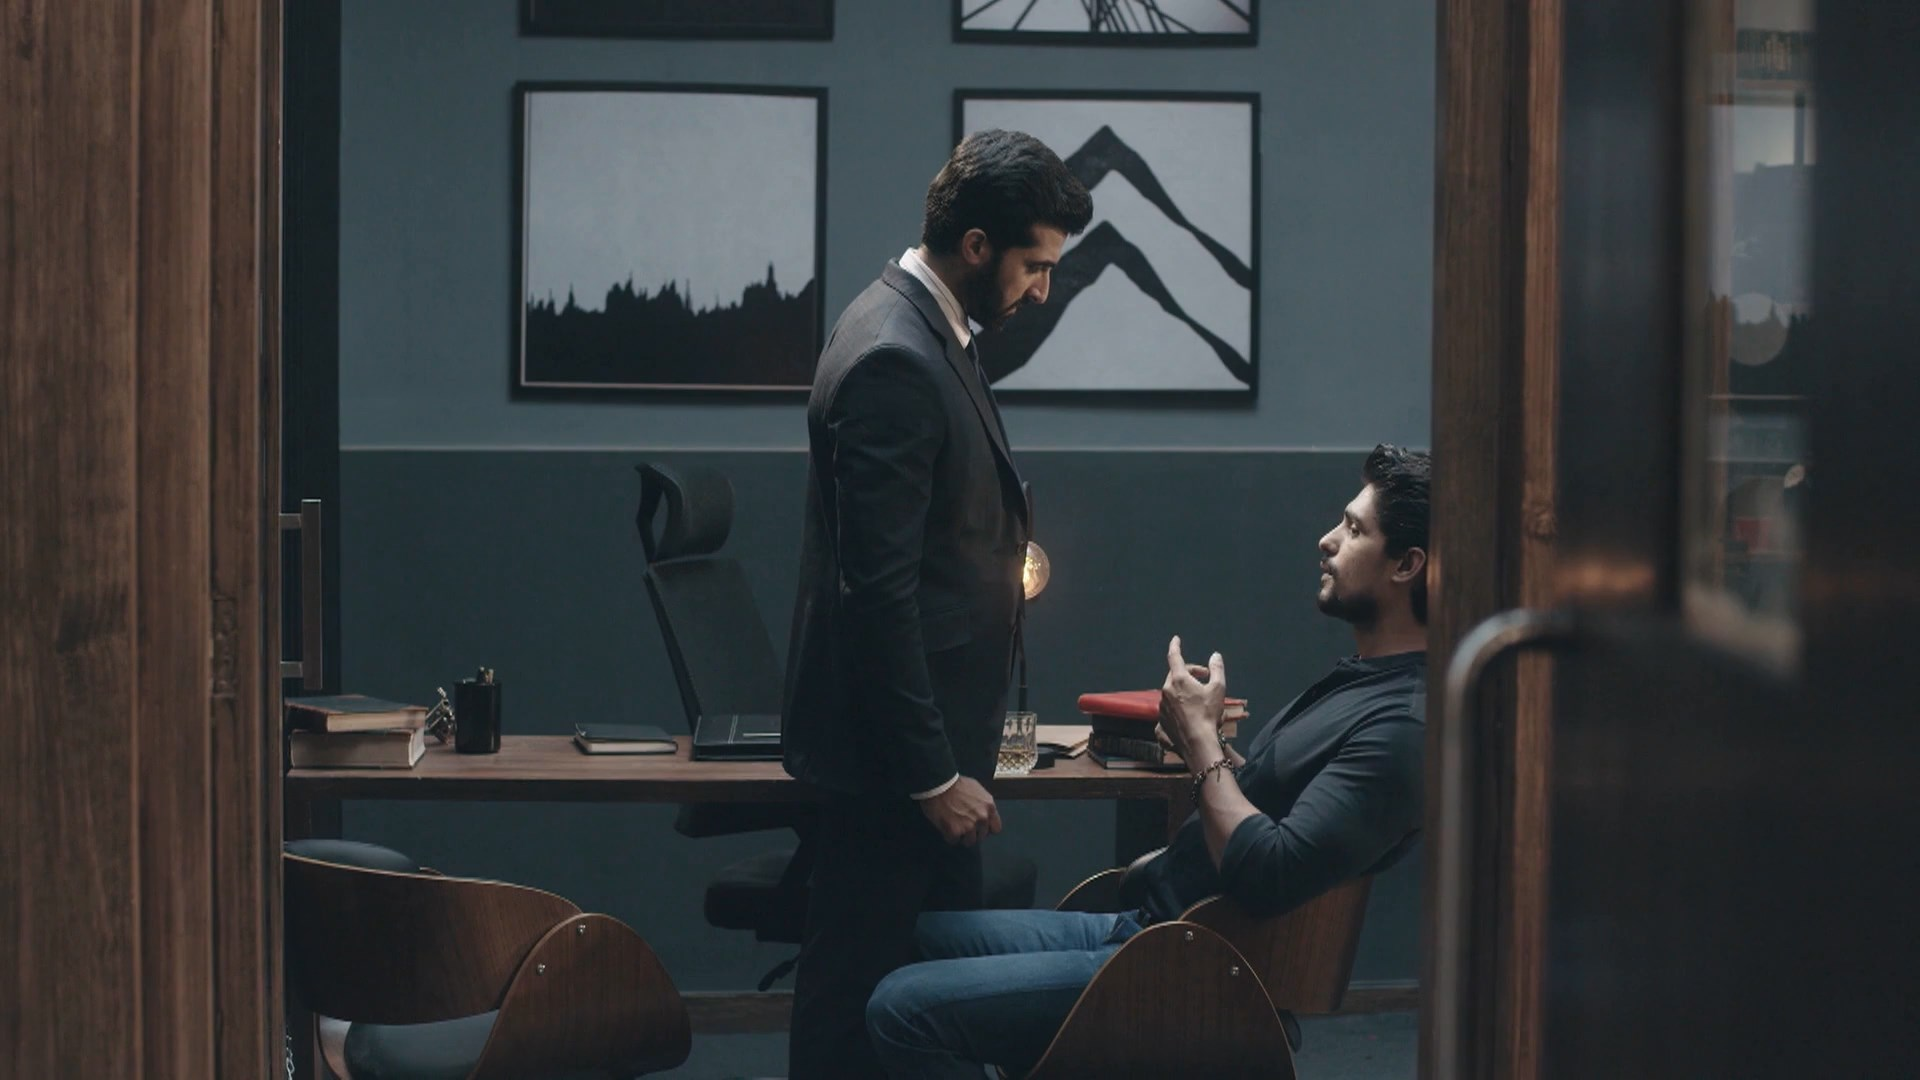 Illegal31d2a22 - Illegal 2020 Hindi S01 Voot Select Complete Web Series 480p HDRip 900MB x264 AAC